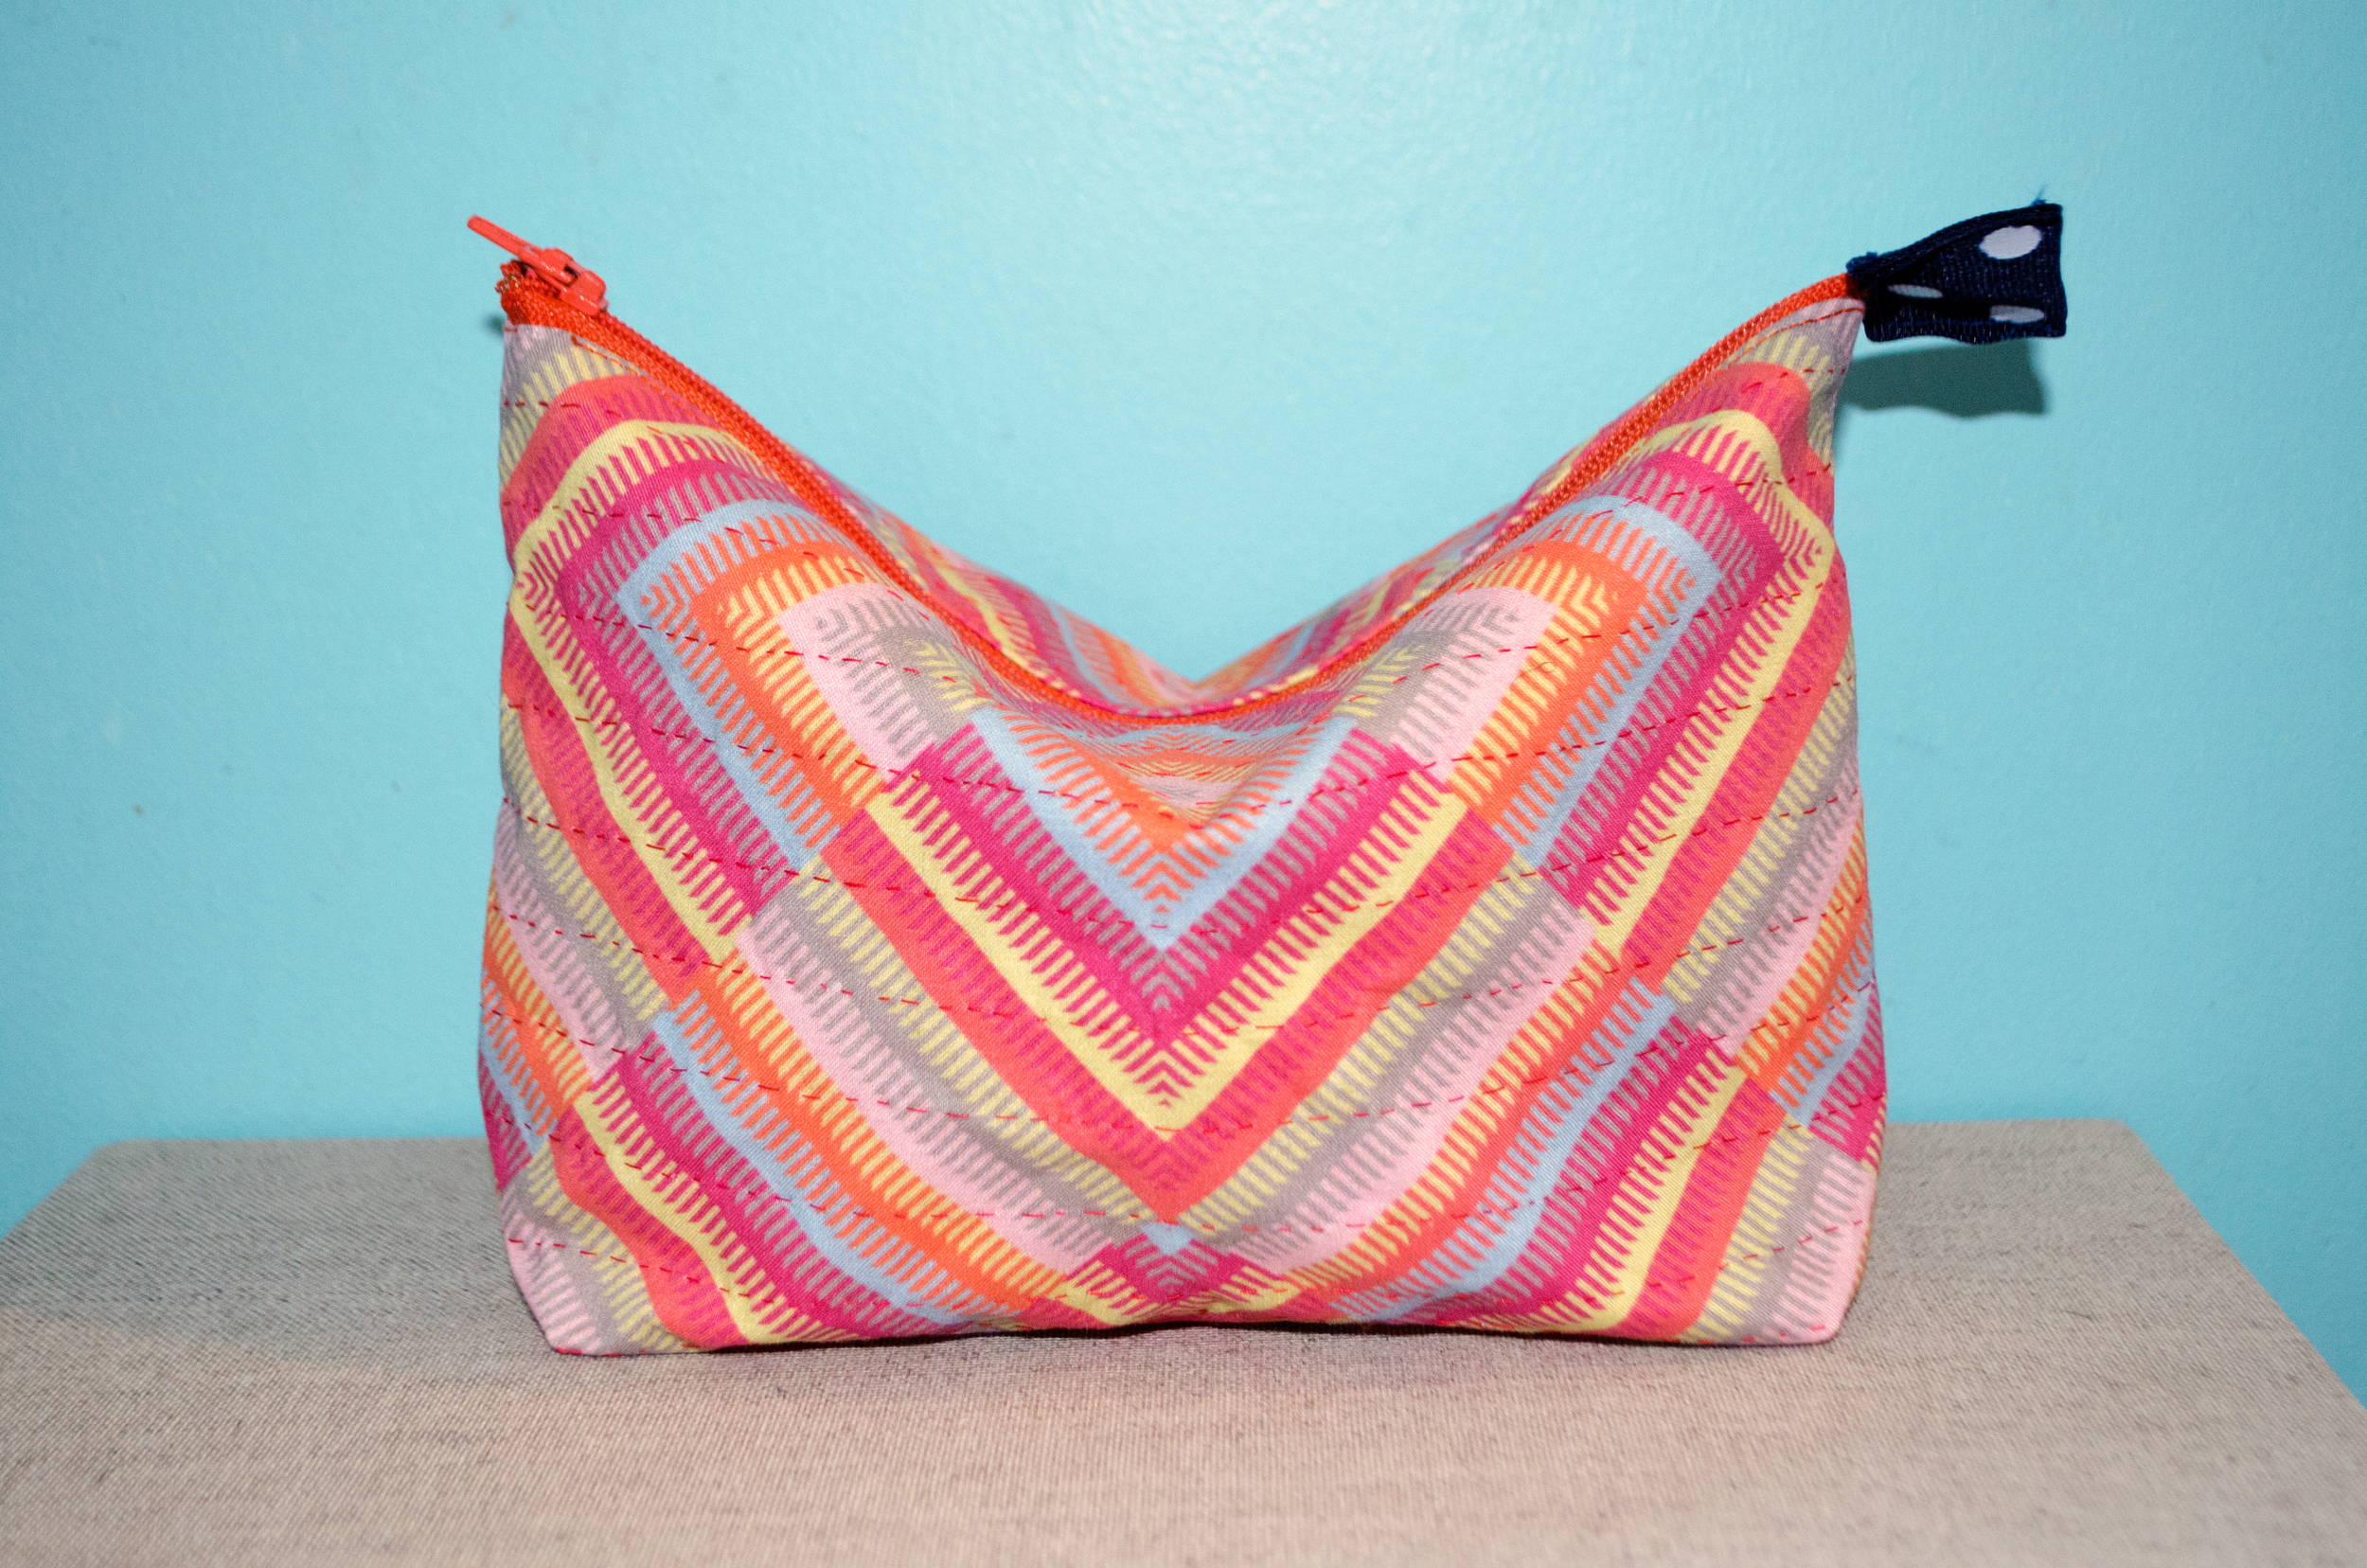 """8 1/2"""" x 5 1/2"""" x 2"""" hand-quilted pouch using a pattern from  Sprout Patterns printed with  Spoonflower fabrics by Carlyn Clark"""